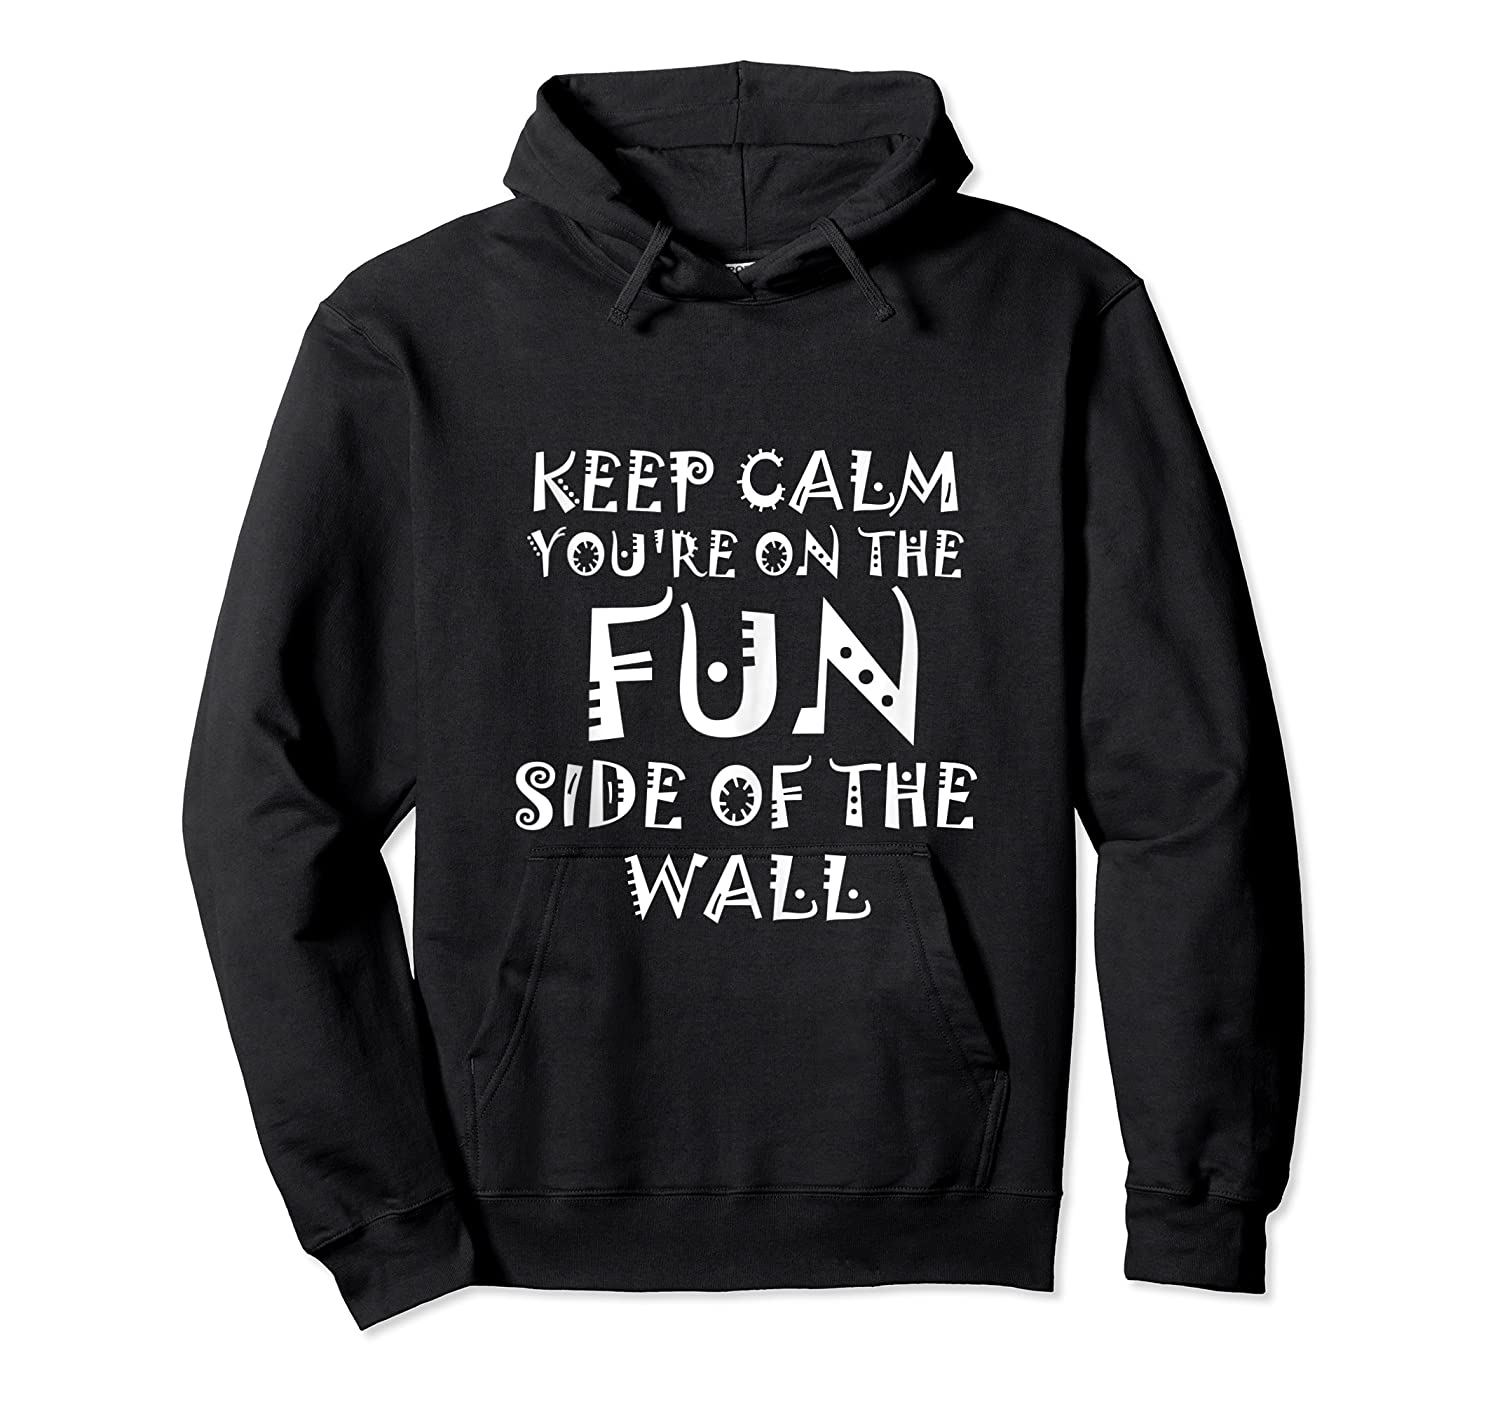 Keep Calm You Re On The Fun Side Of The Wall Funny Mexican Tank Top Shirts Unisex Pullover Hoodie